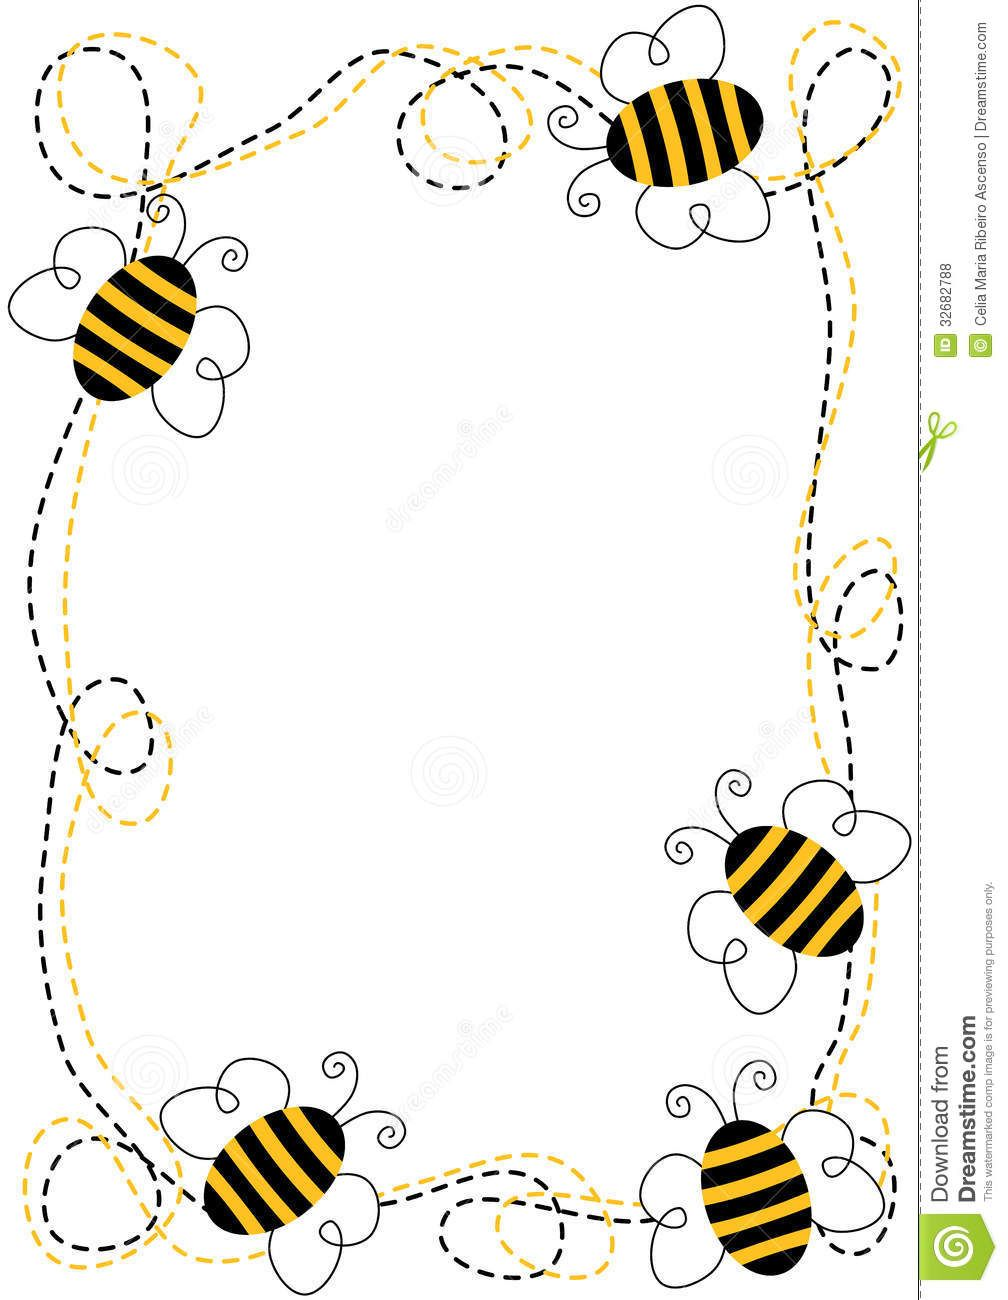 Bee clipart frame. Flying bees download from